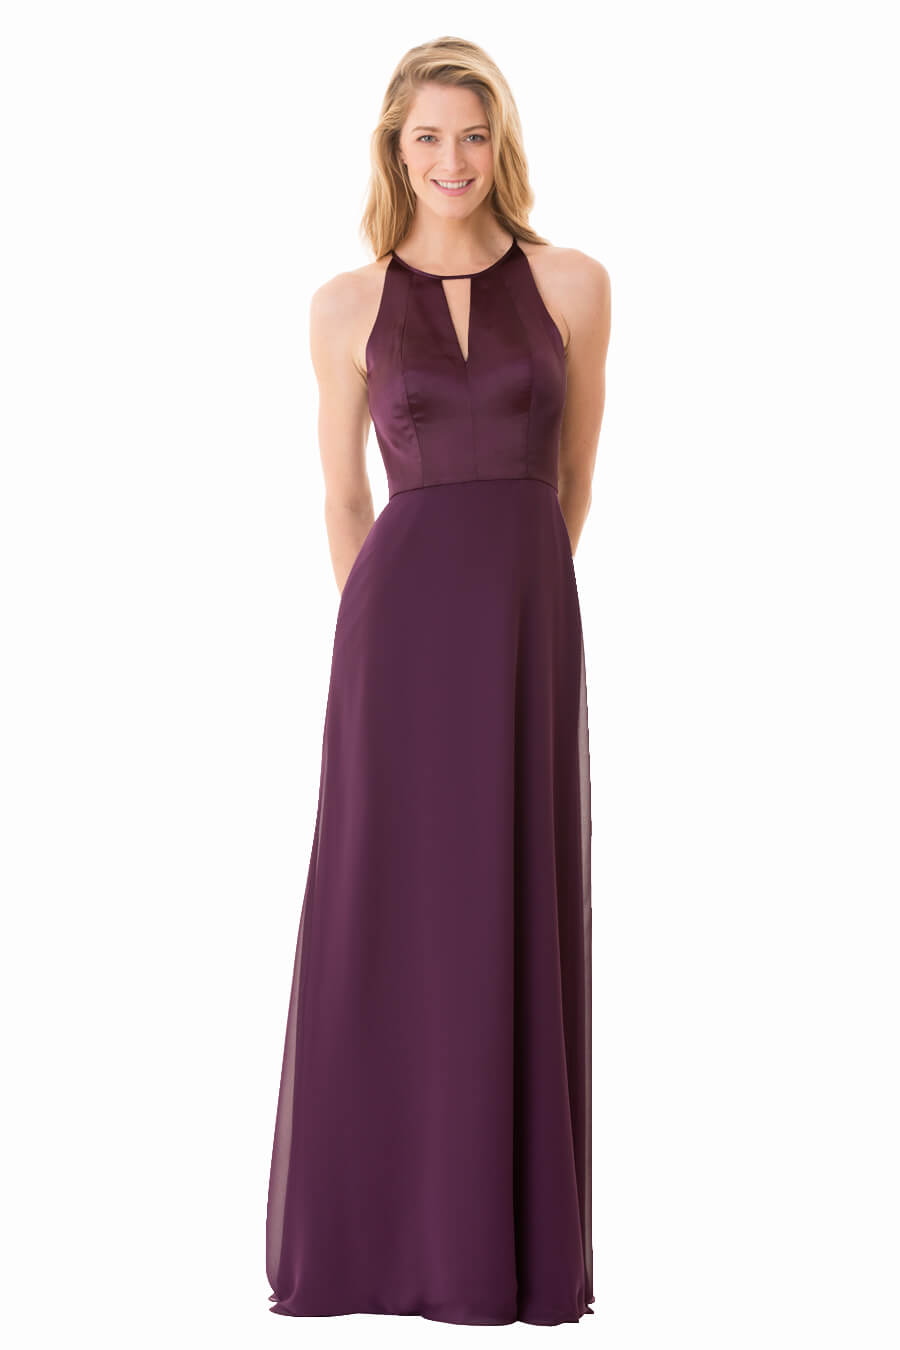 STYLE: 1654 (available short 1654-s) | Bridesmaid Dresses, Evening ...